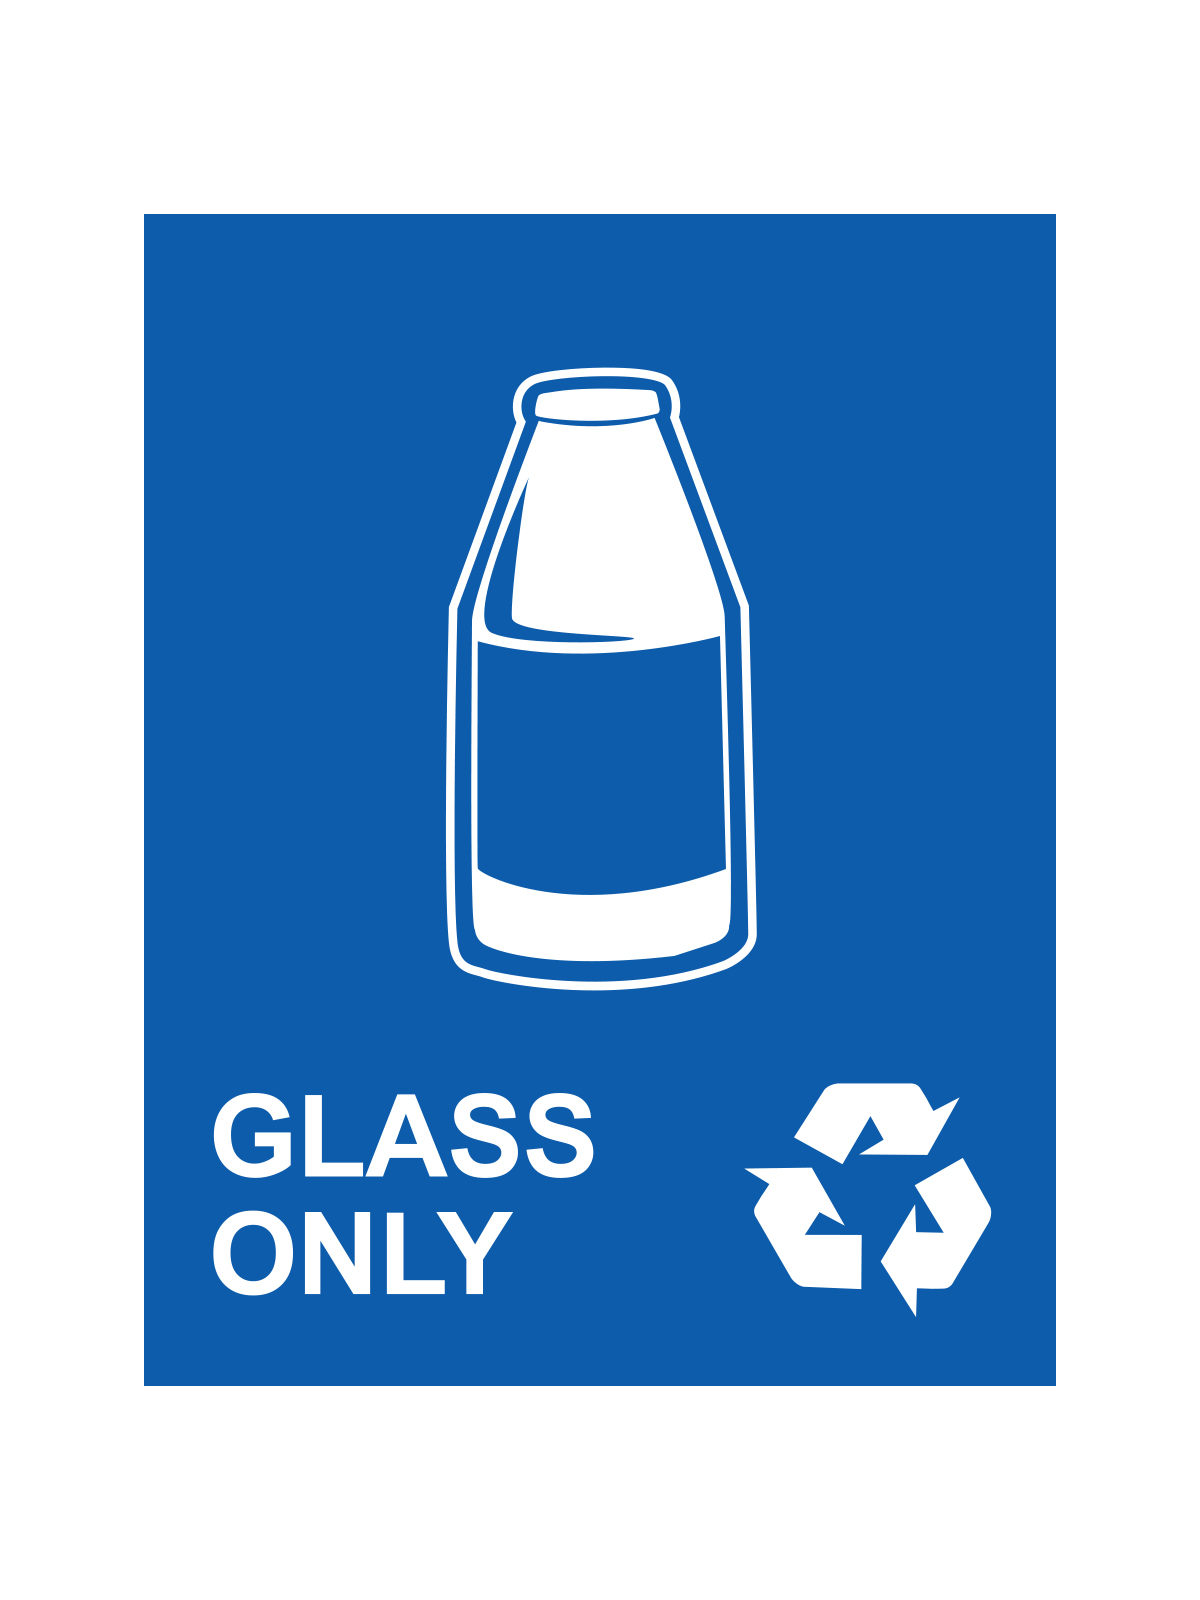 WASTE WATCHER® SIGN - GLASS ONLY W/GLASS LOGO & MOBIUS LOOP title=